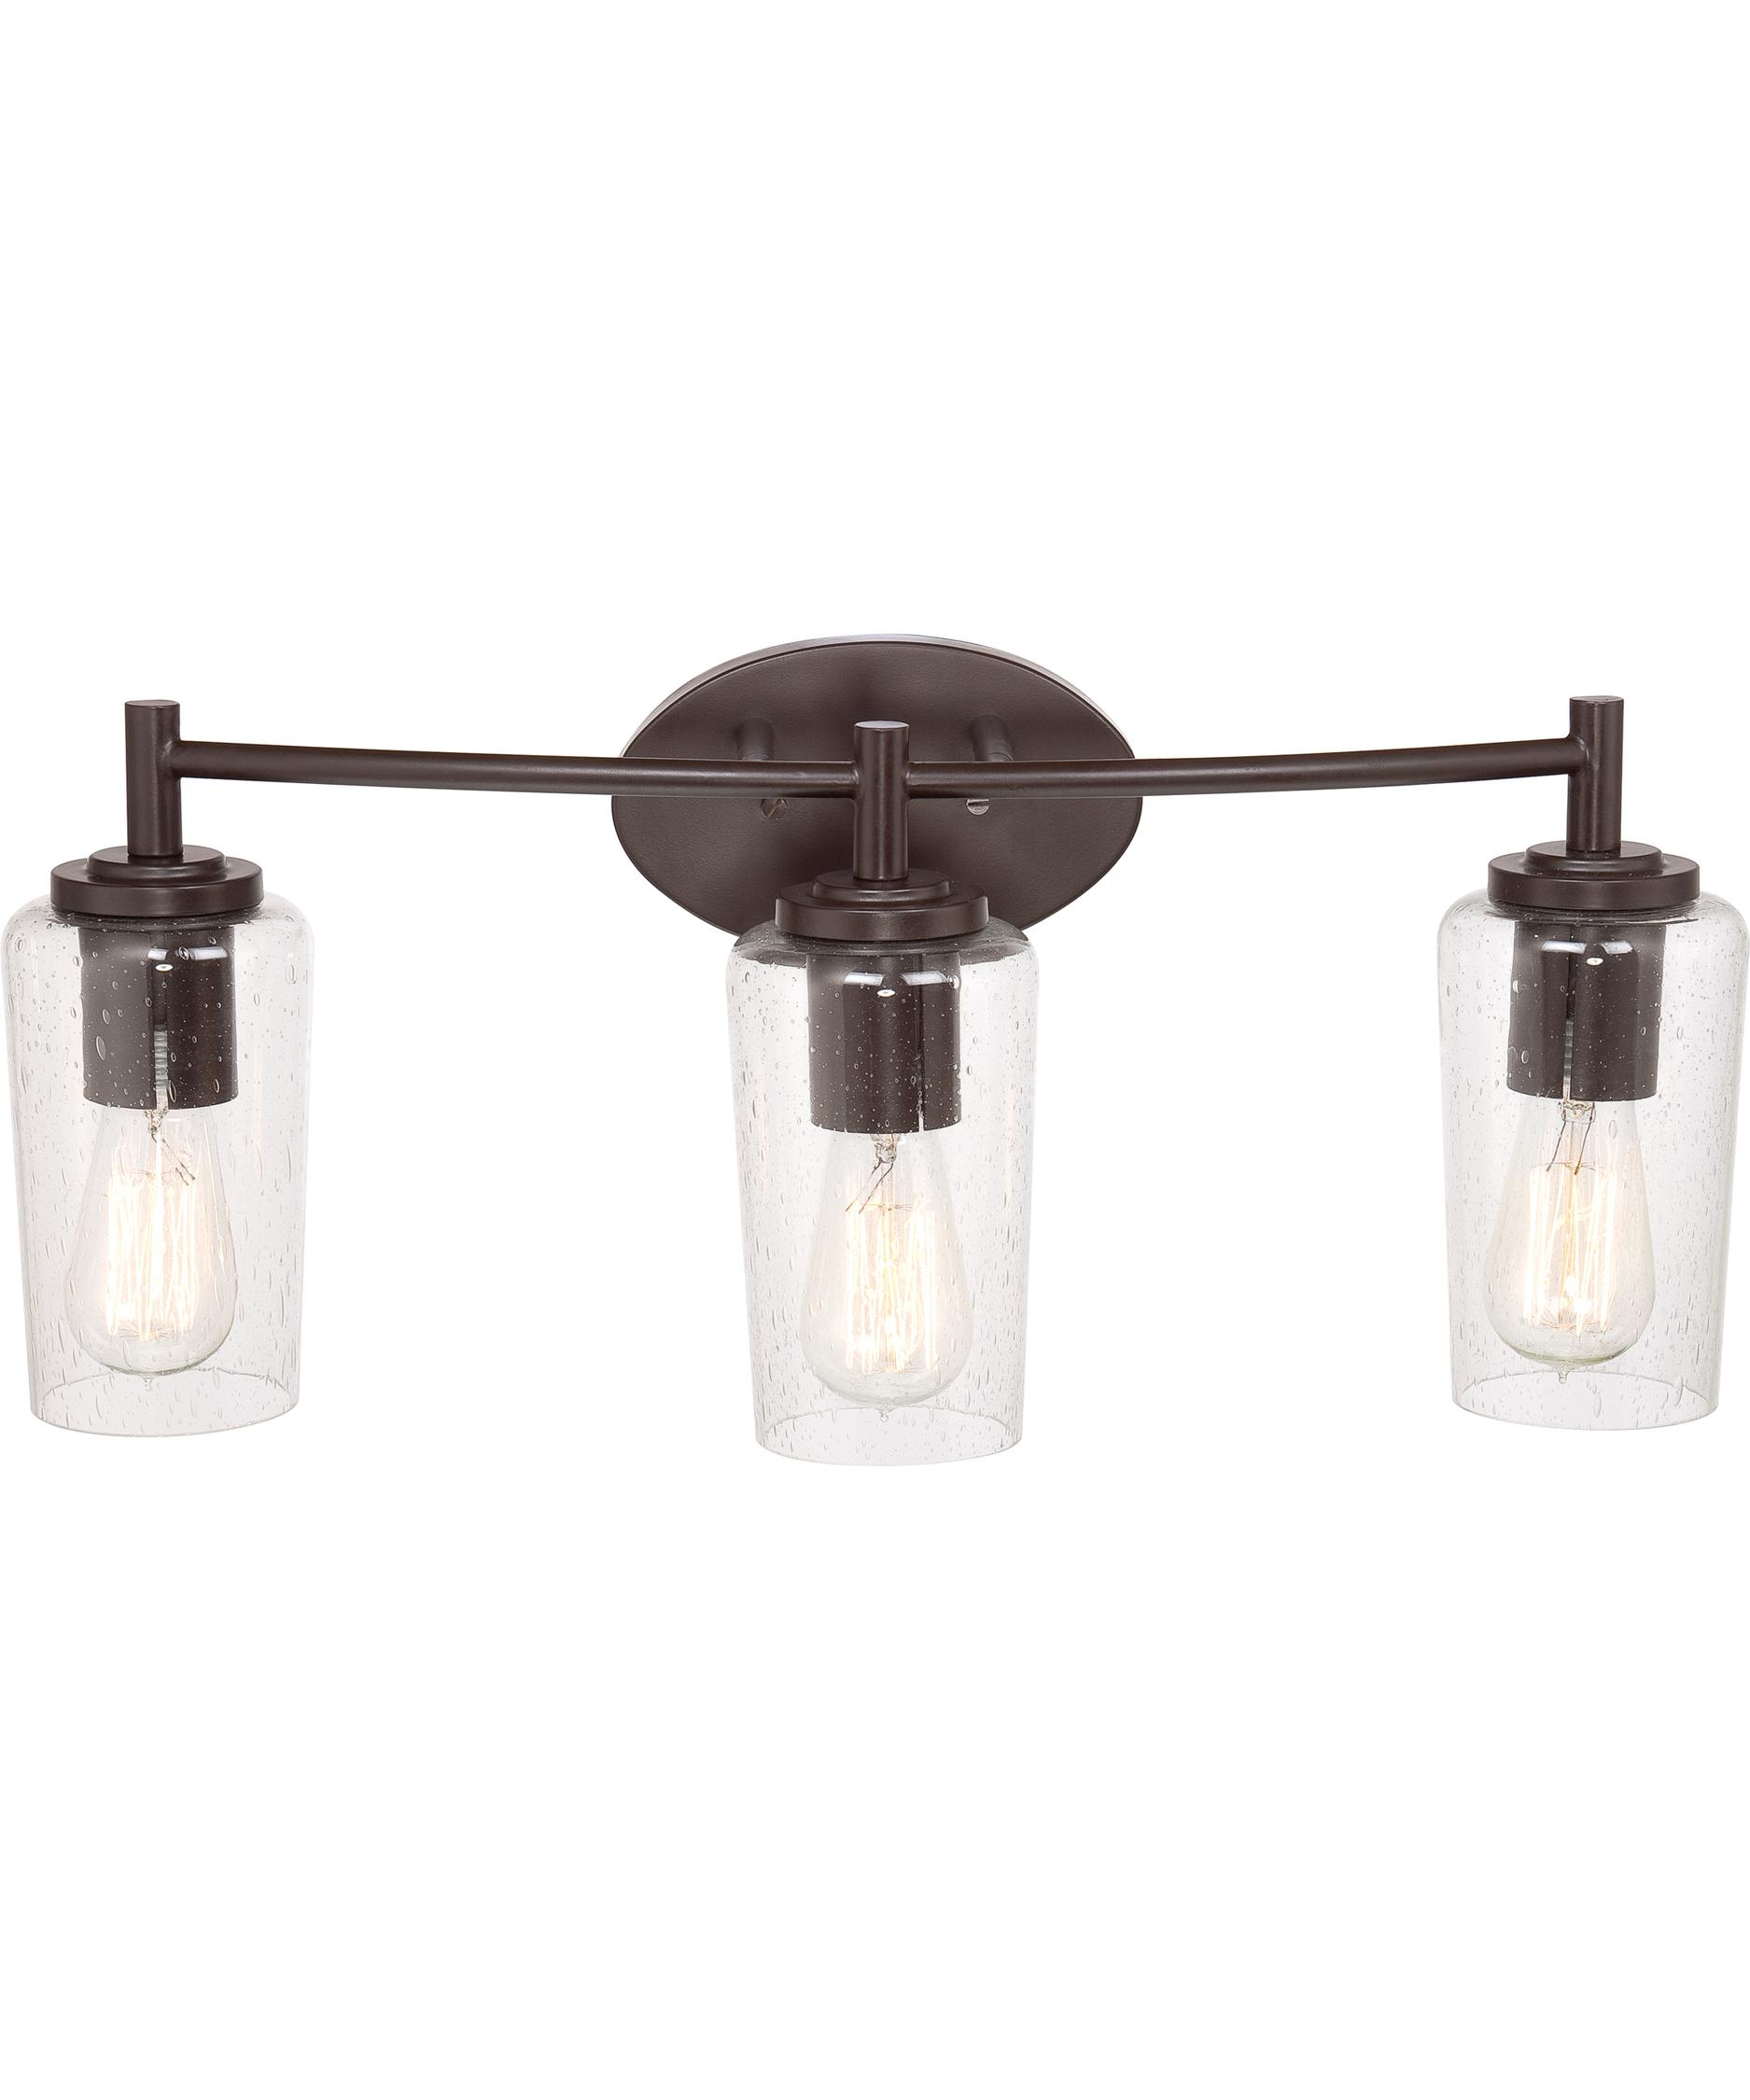 Quoizel Edison 23 Inch Bath Vanity Light Capitol Lighting 1